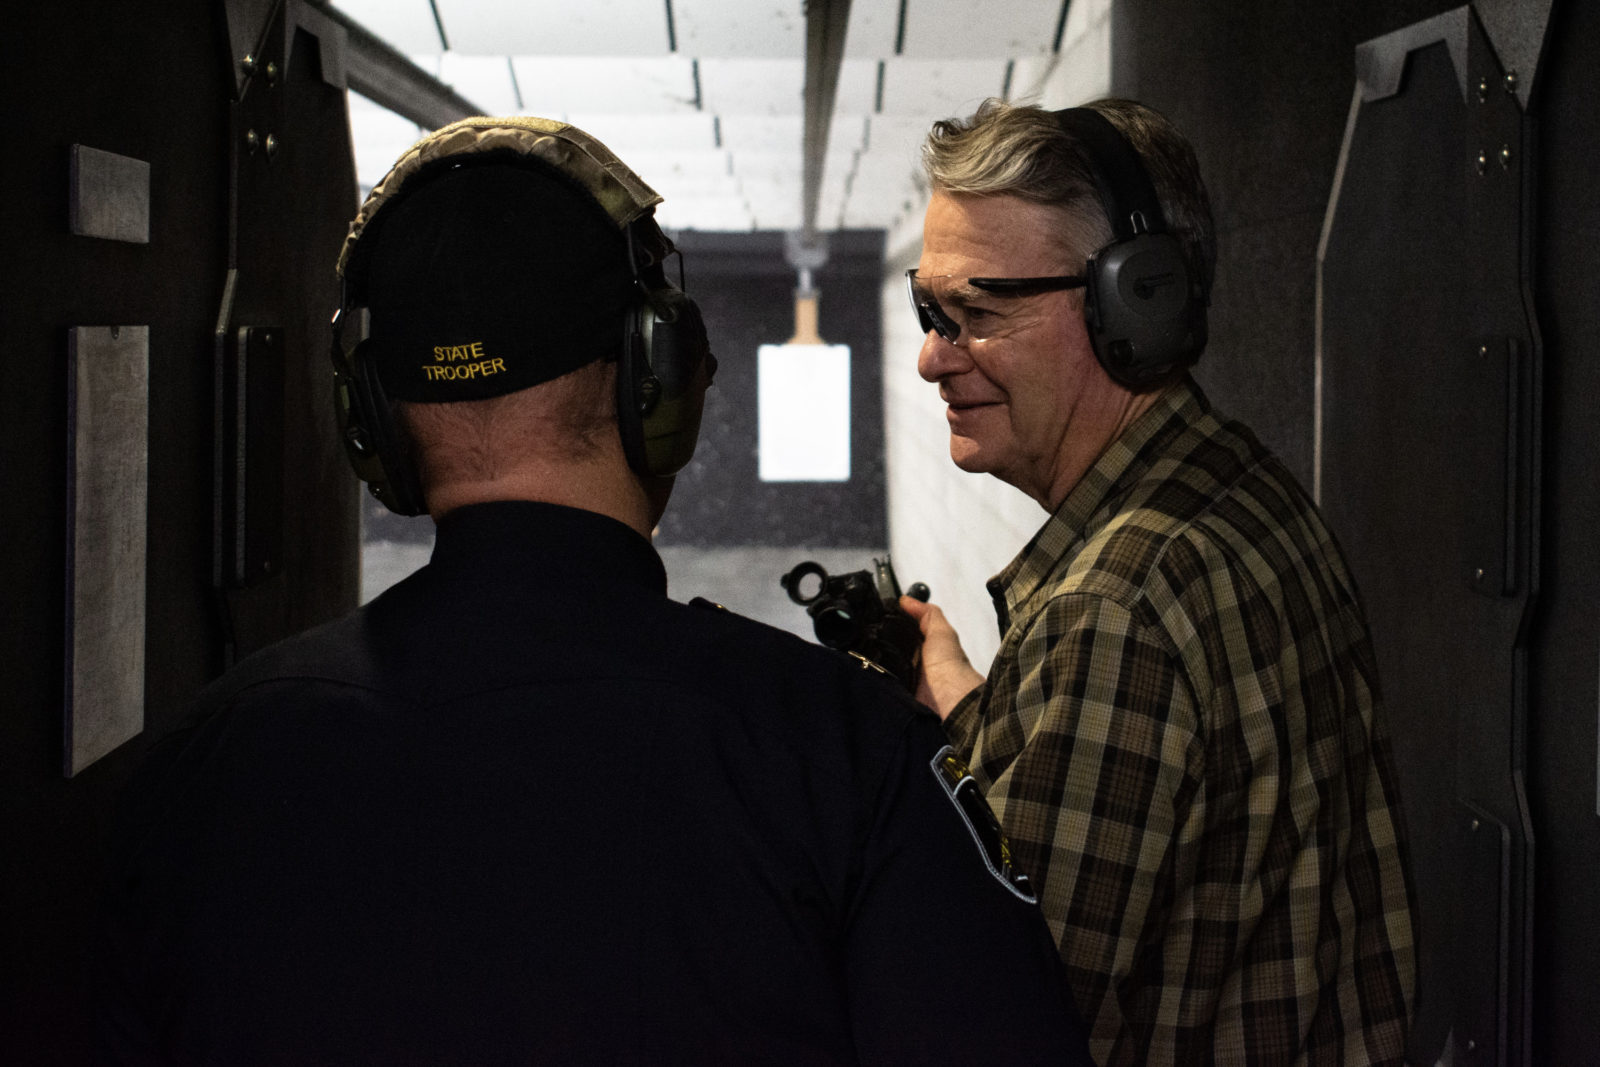 As Firearms Industry Flees Tightening Gun Laws, States Like Idaho Open Their Arms